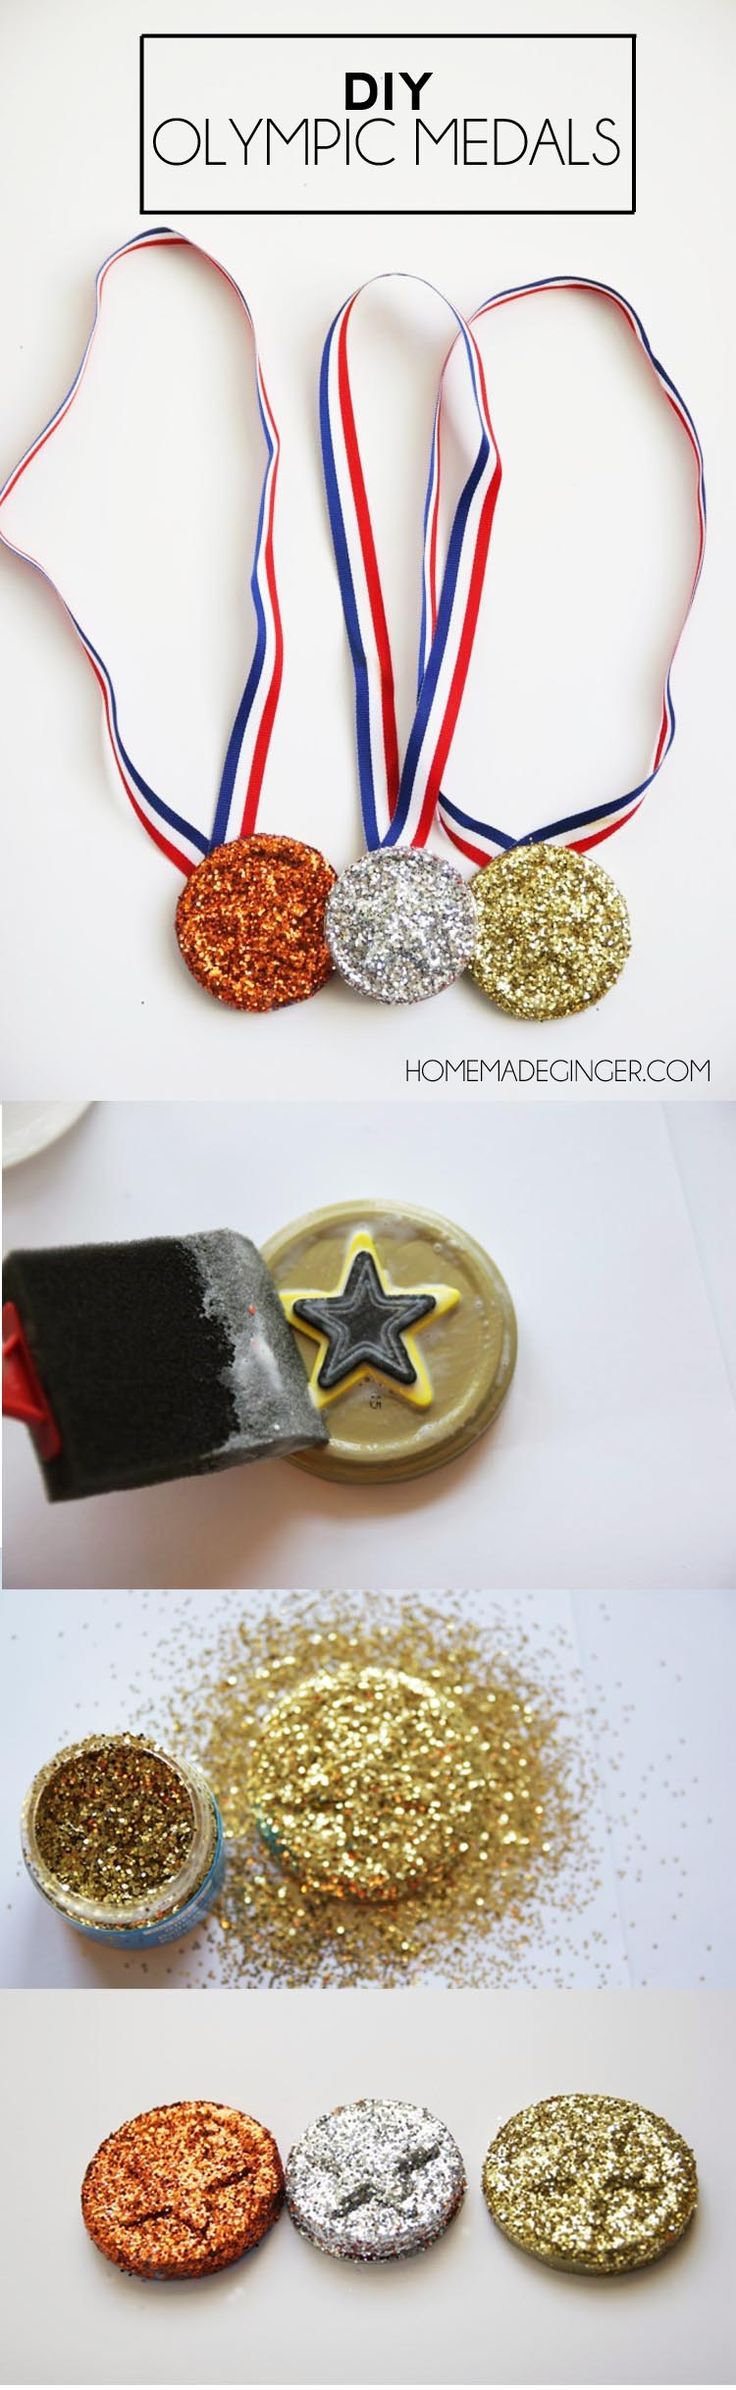 DIY Olympics Medals | Olympics Recipes, Crafts and more